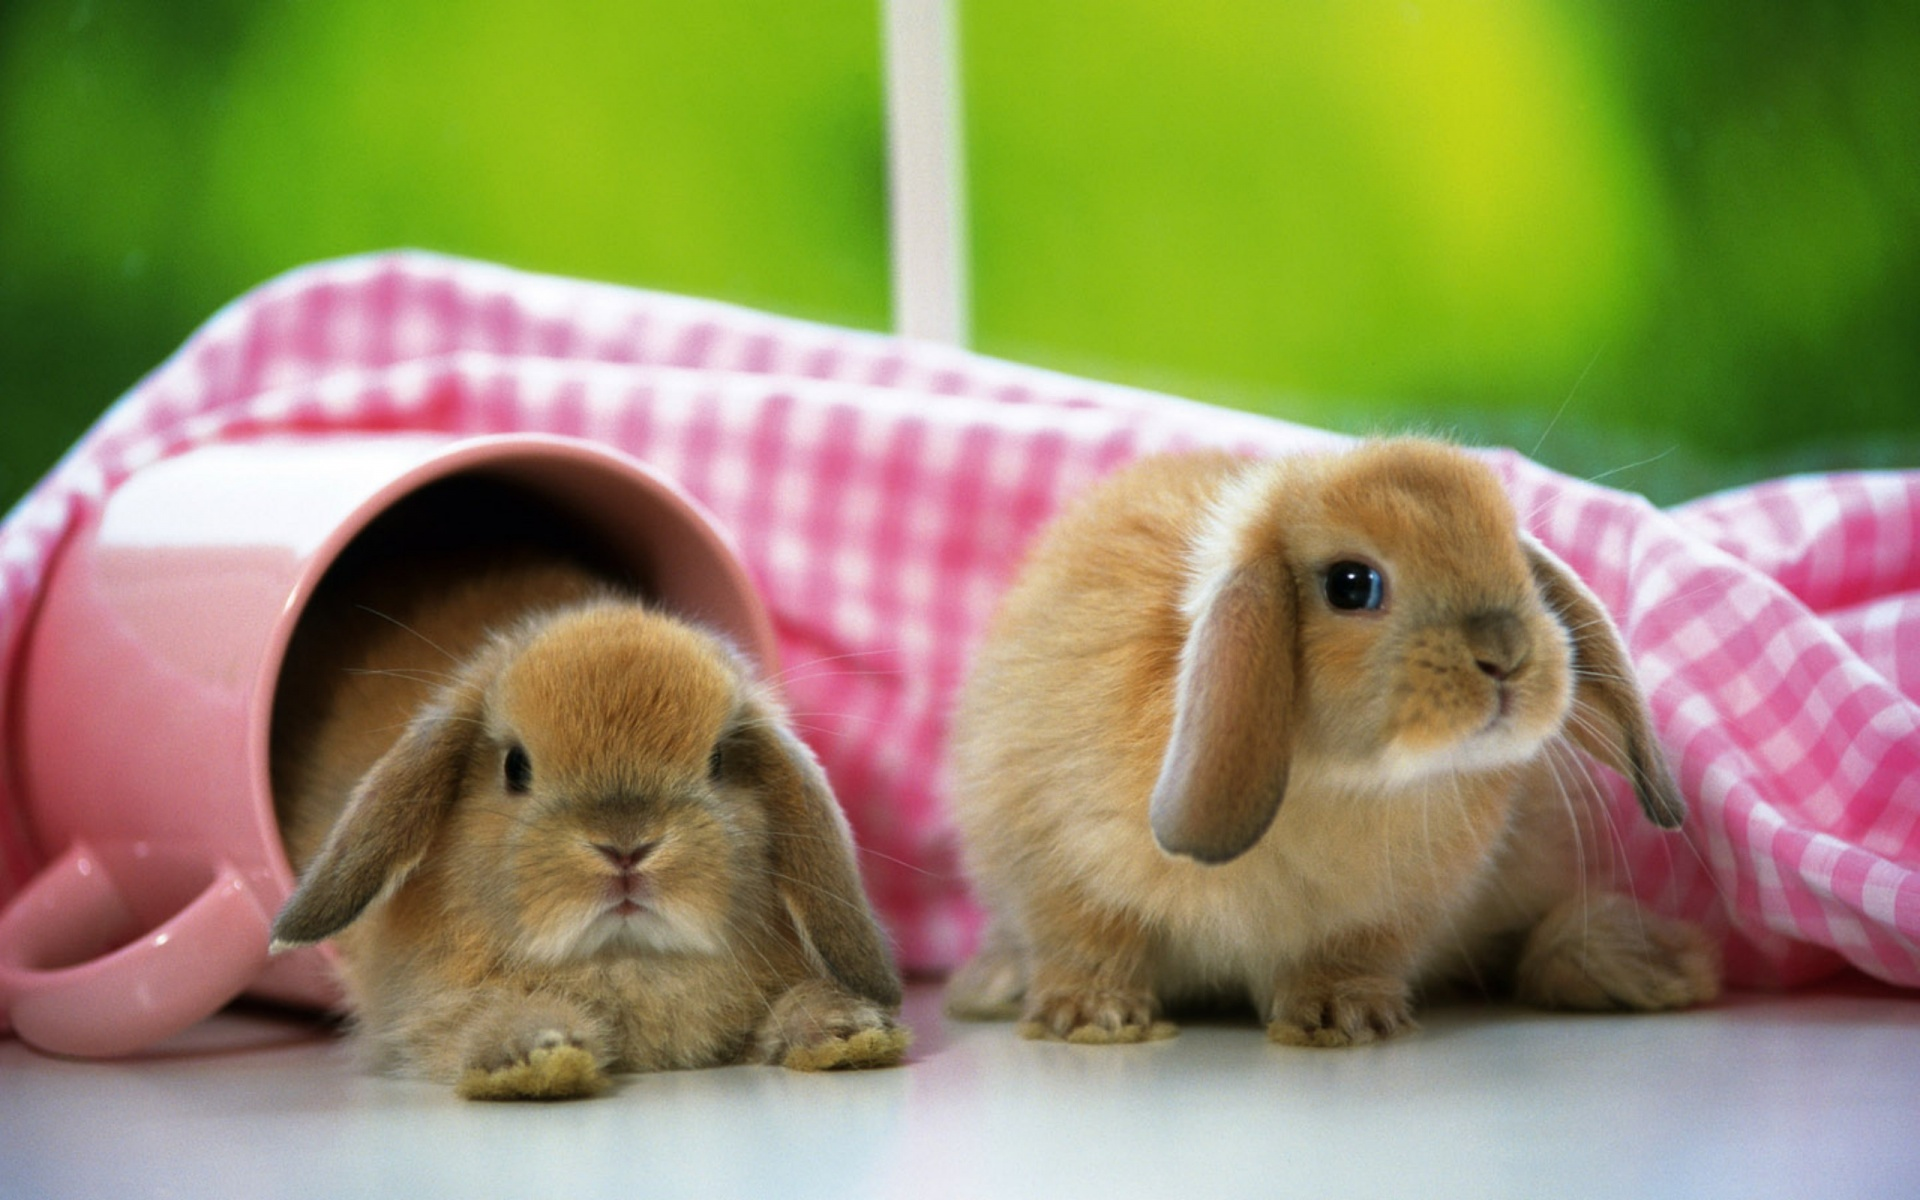 Rabbits Images Bunnies HD Wallpaper And Background Photos